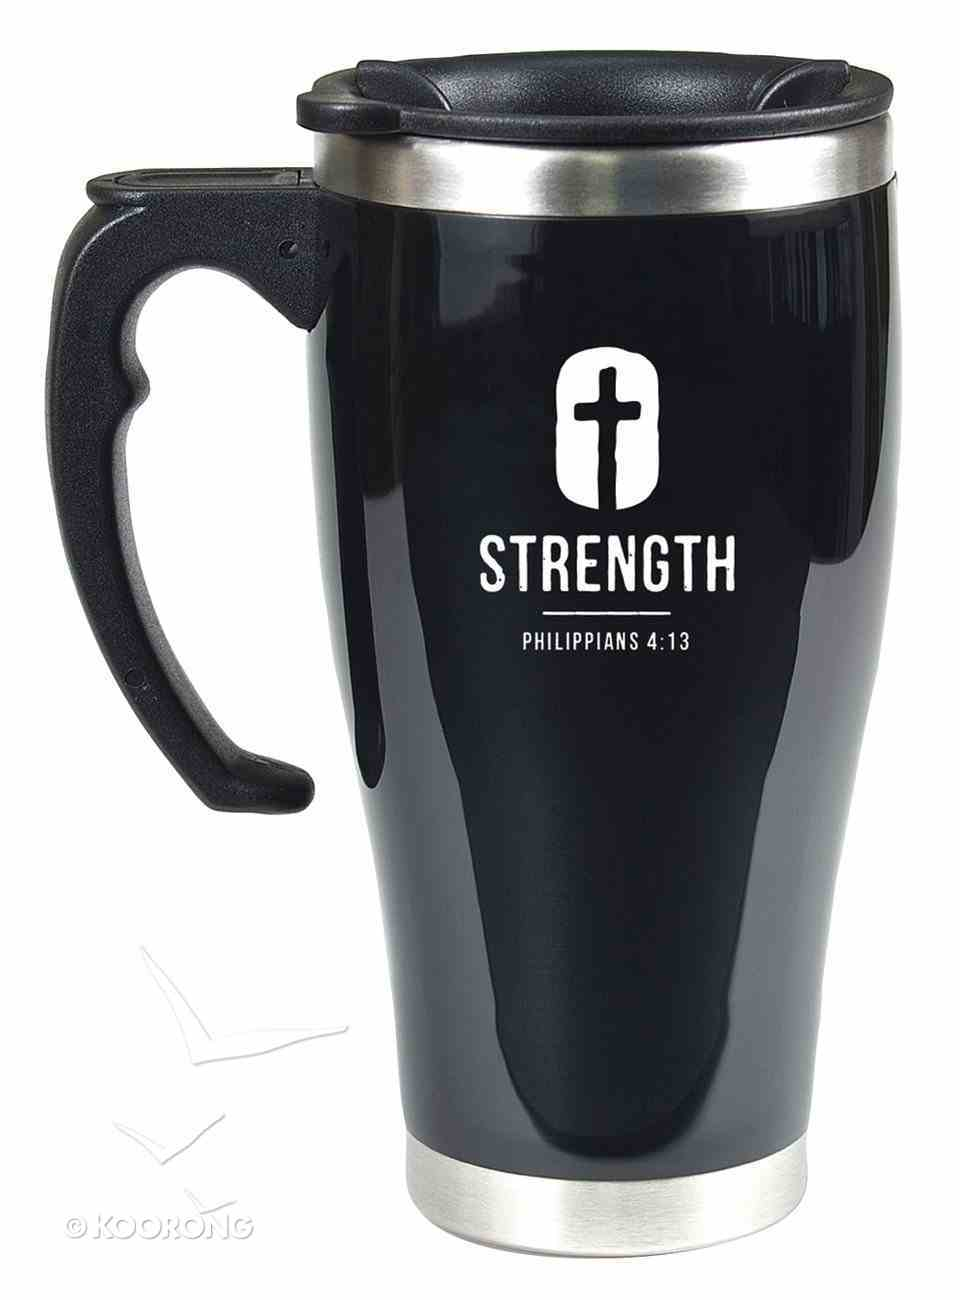 Stainless Steel Travel Mug With Handle: Strength (Phil 4:13) Homeware